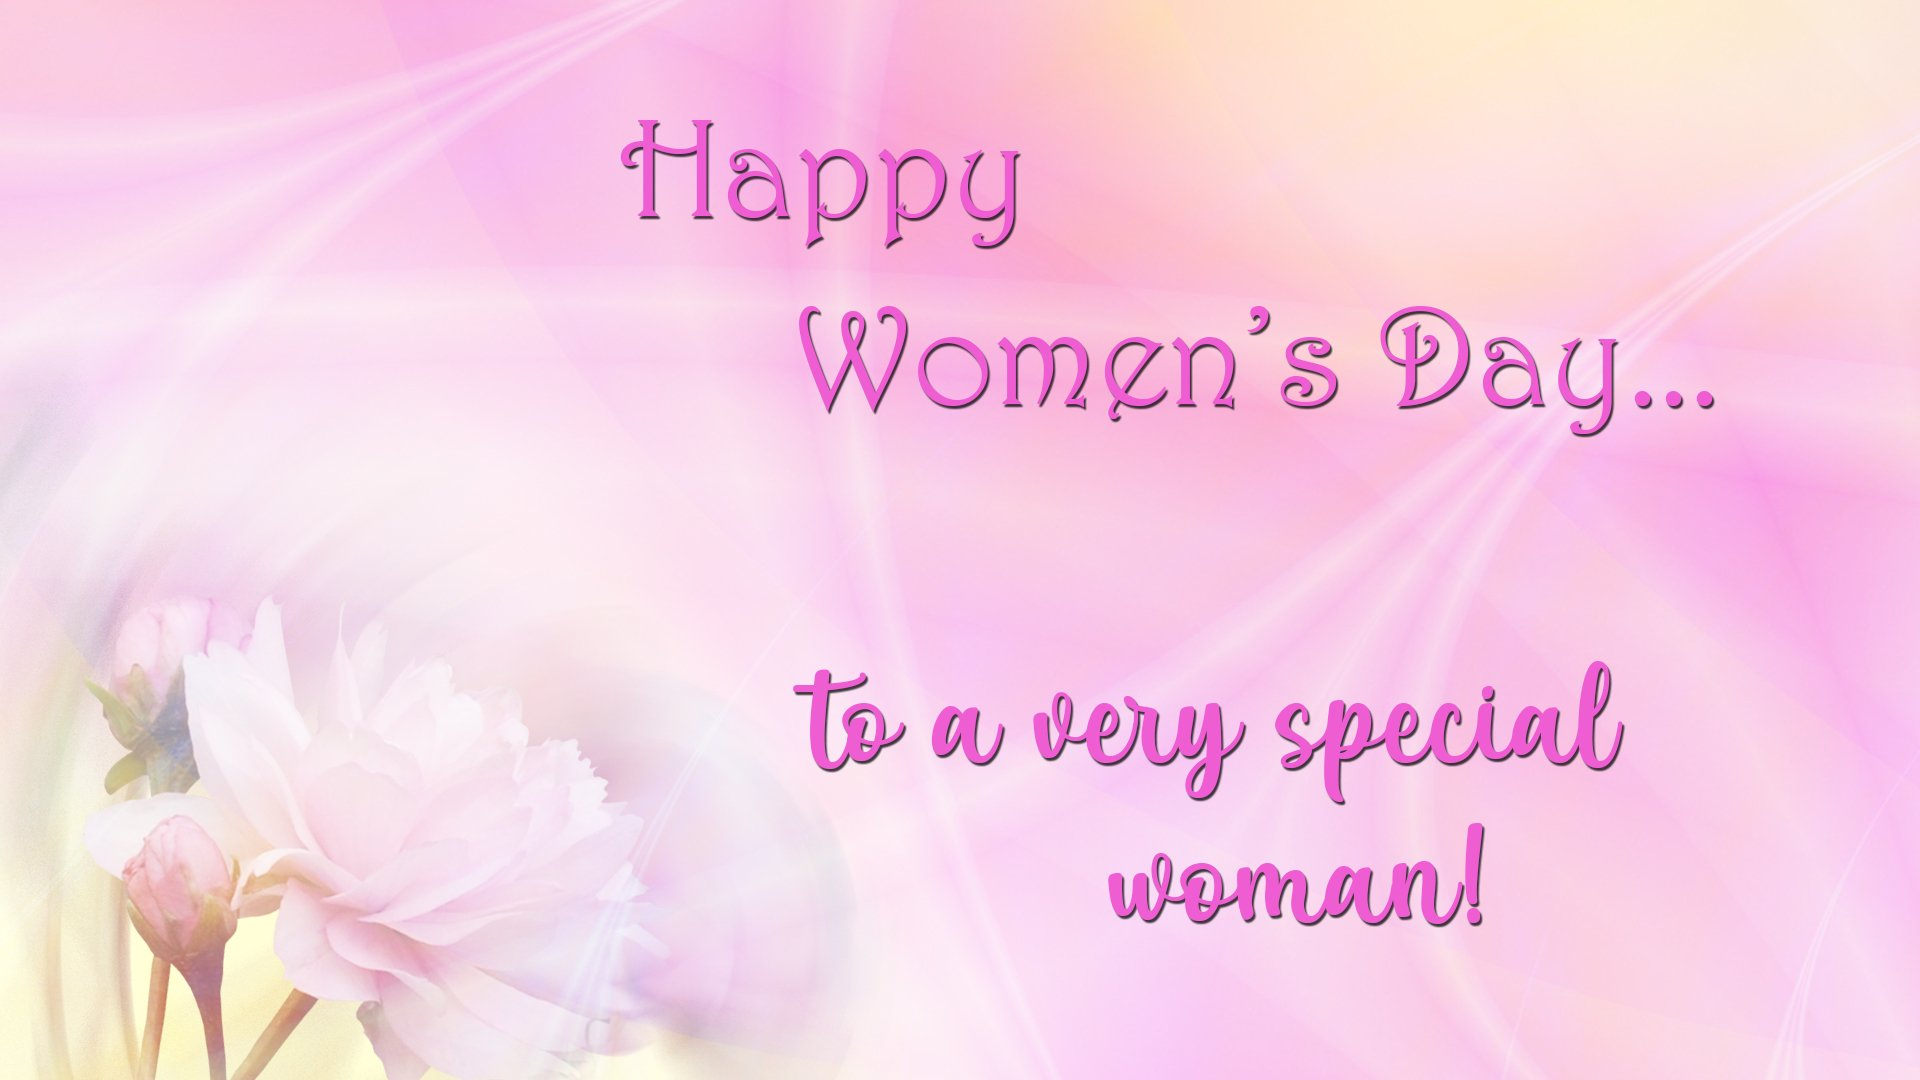 Happy Women S Day Papel De Parede Hd Plano De Fundo 1920x1080